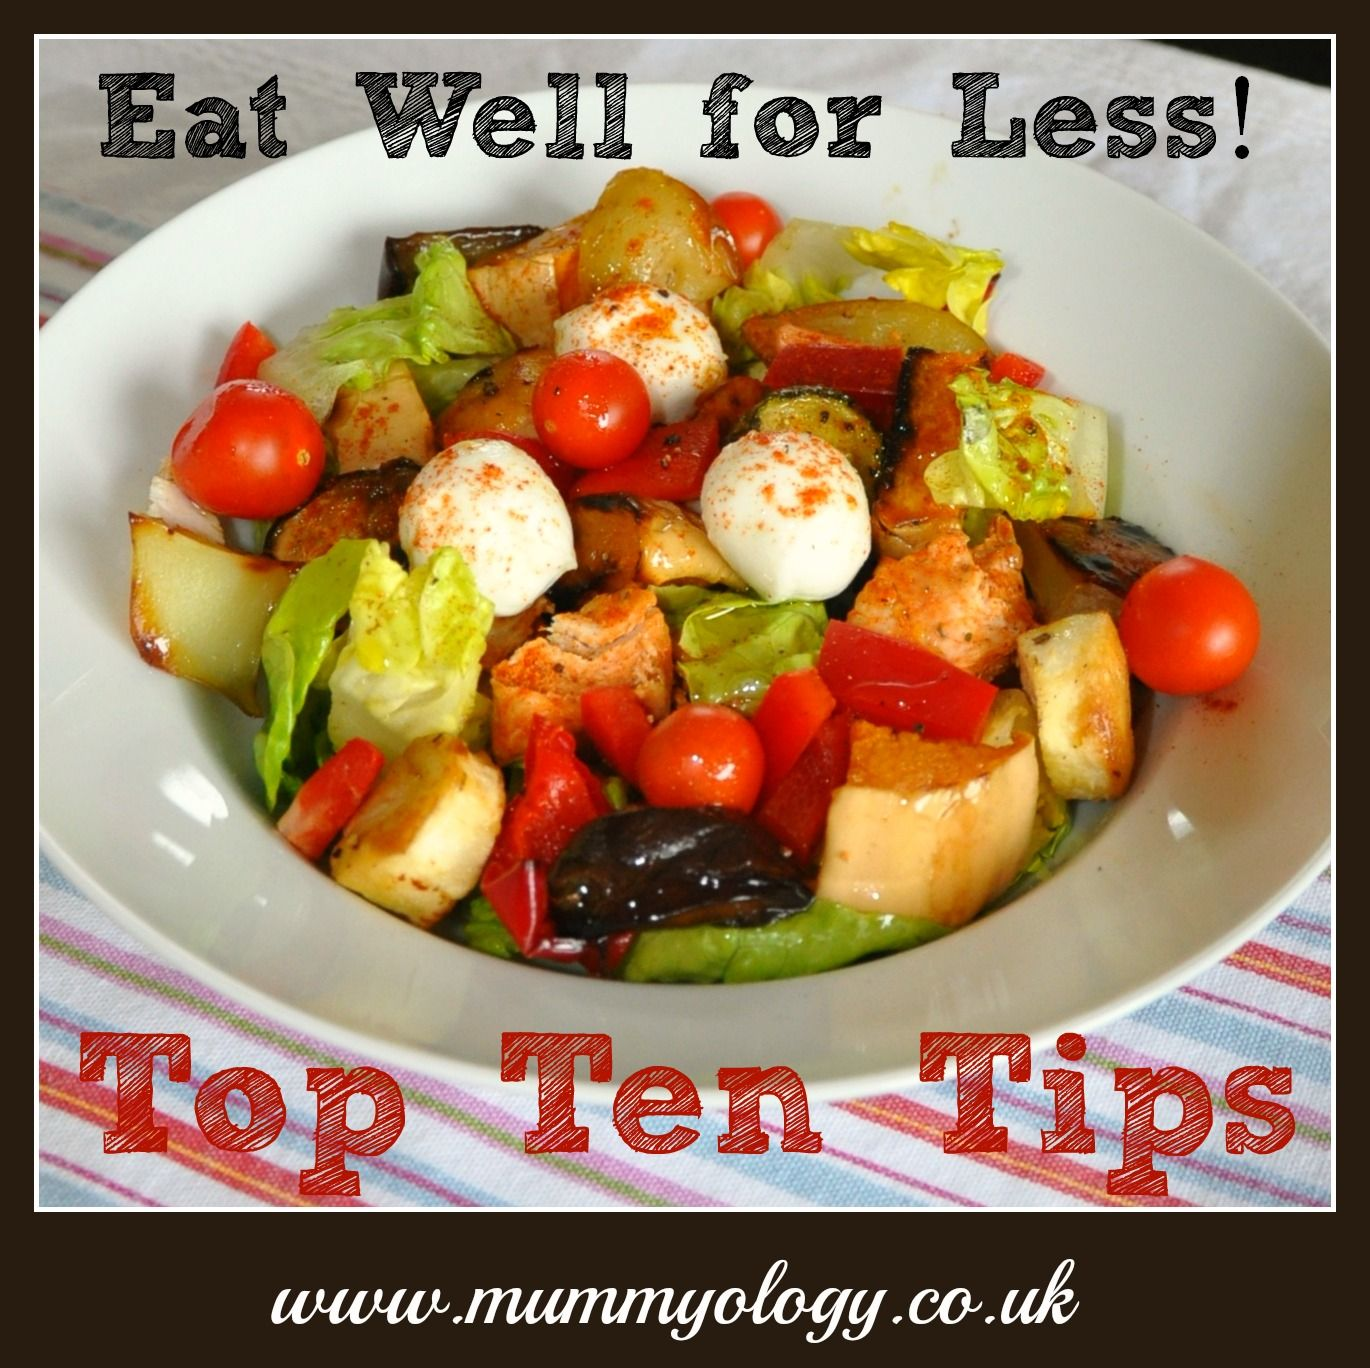 Mummyology:: Eat Well for Less - Top 10 Tips!